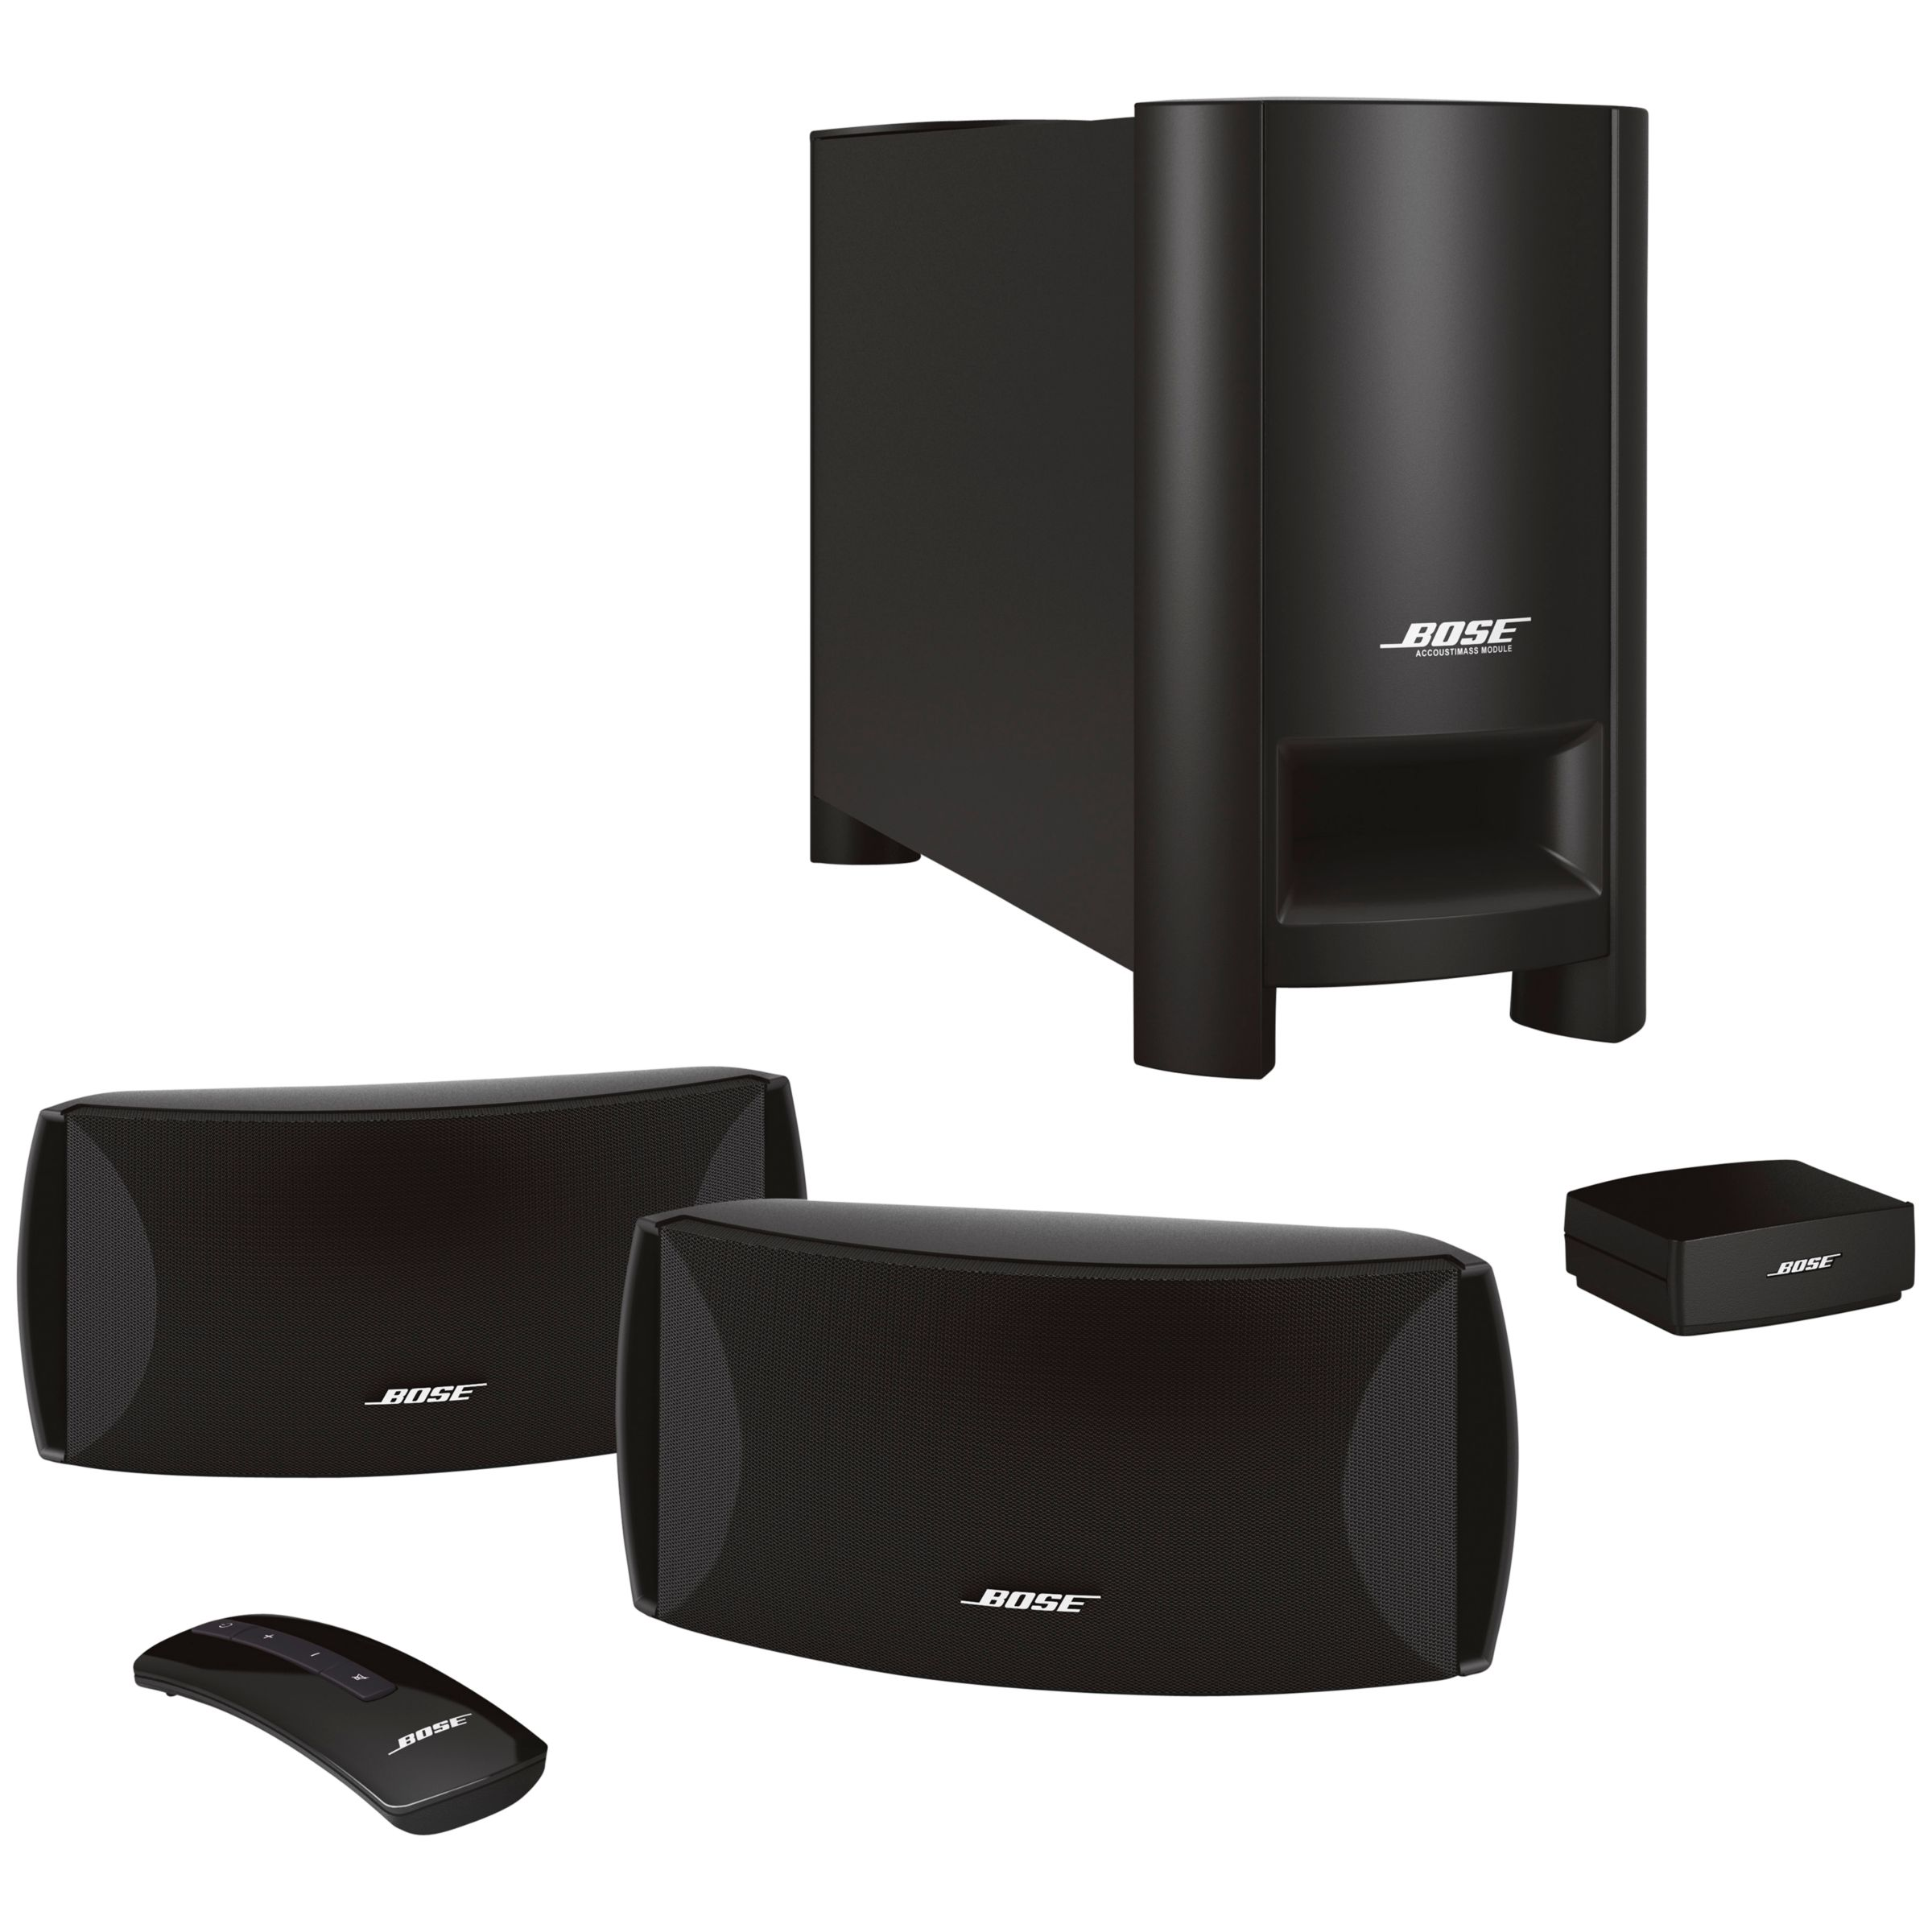 bose cinemate ii 2 1 home cinema speaker system with philips bdp2980 12 3d blu ray dvd player. Black Bedroom Furniture Sets. Home Design Ideas